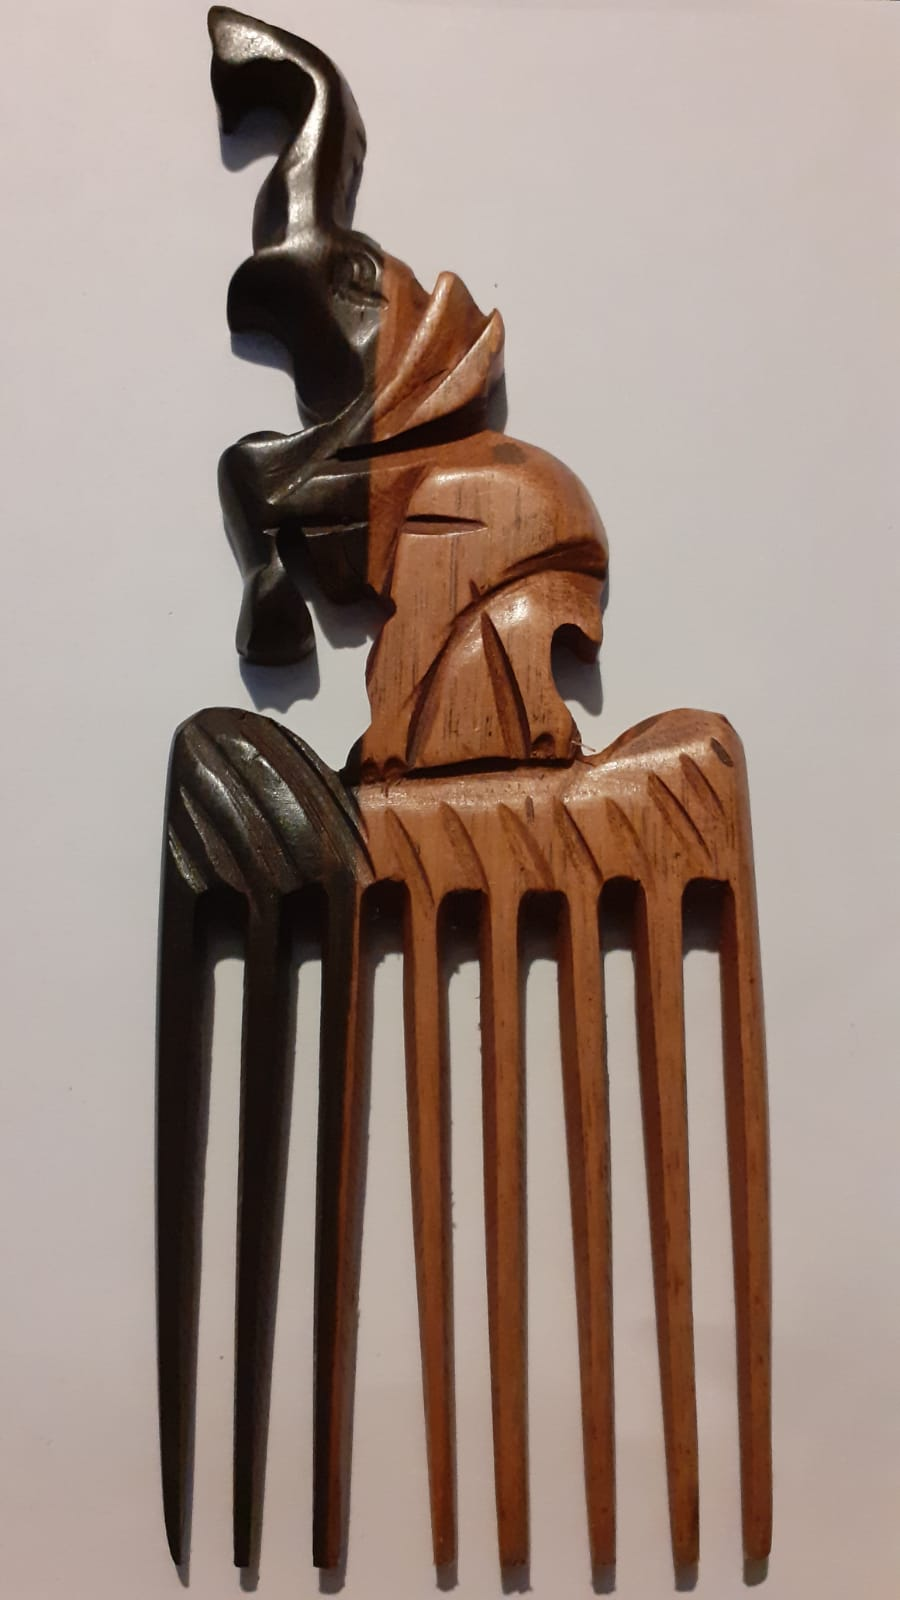 Hand-Carved Wooden Comb